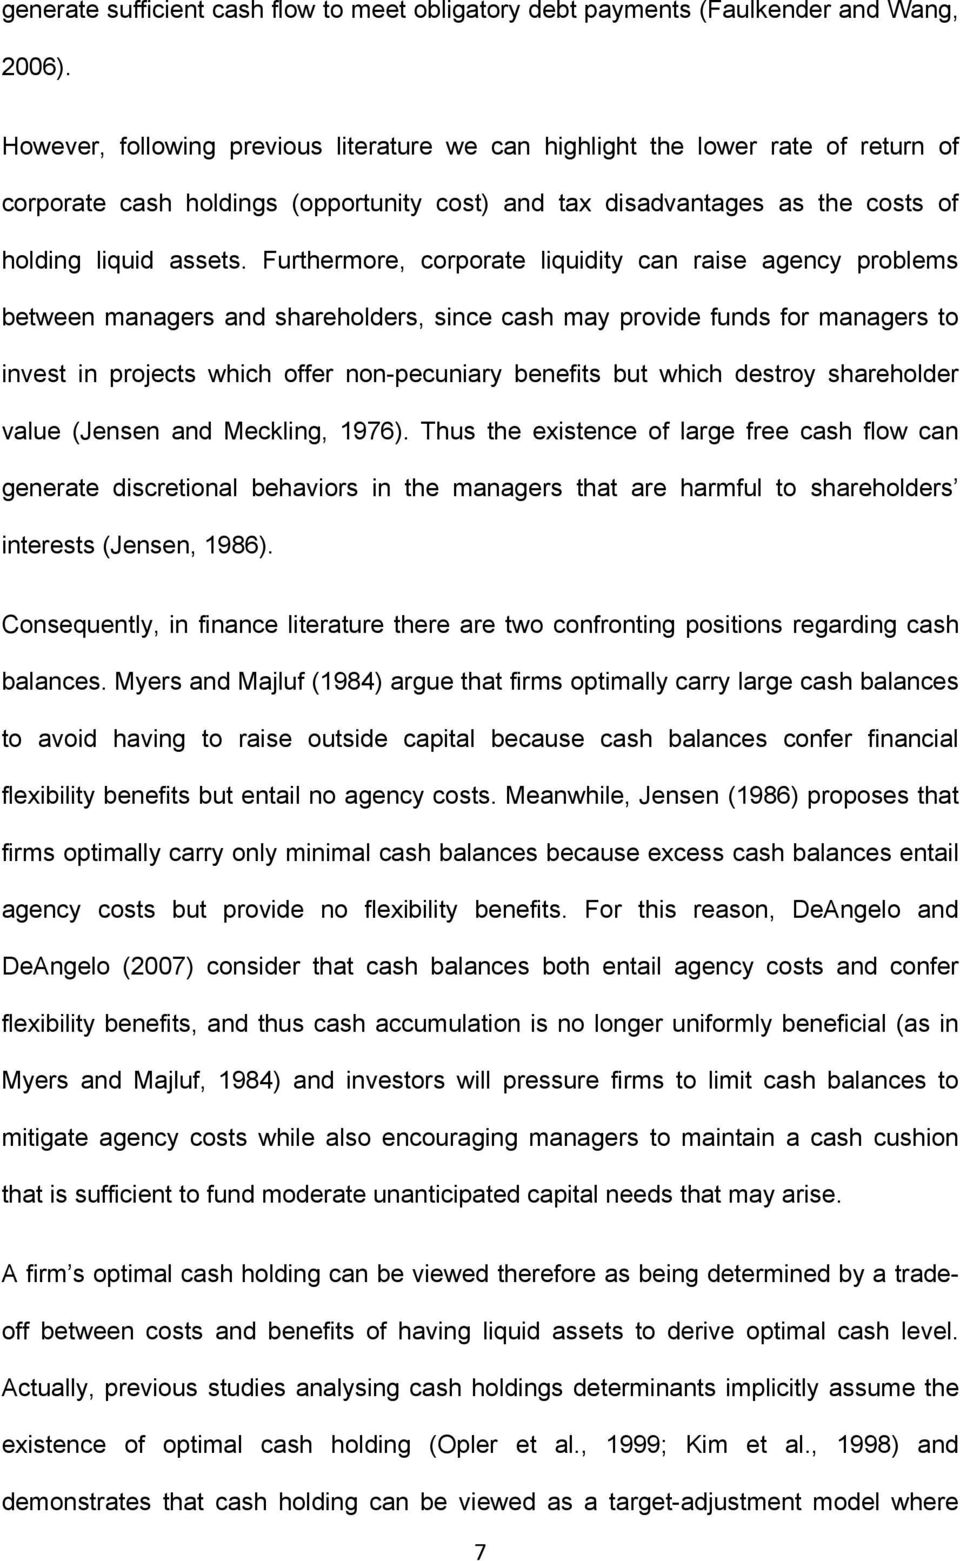 Furthermore, corporate liquidity can raise agency problems between managers and shareholders, since cash may provide funds for managers to invest in projects which offer non-pecuniary benefits but